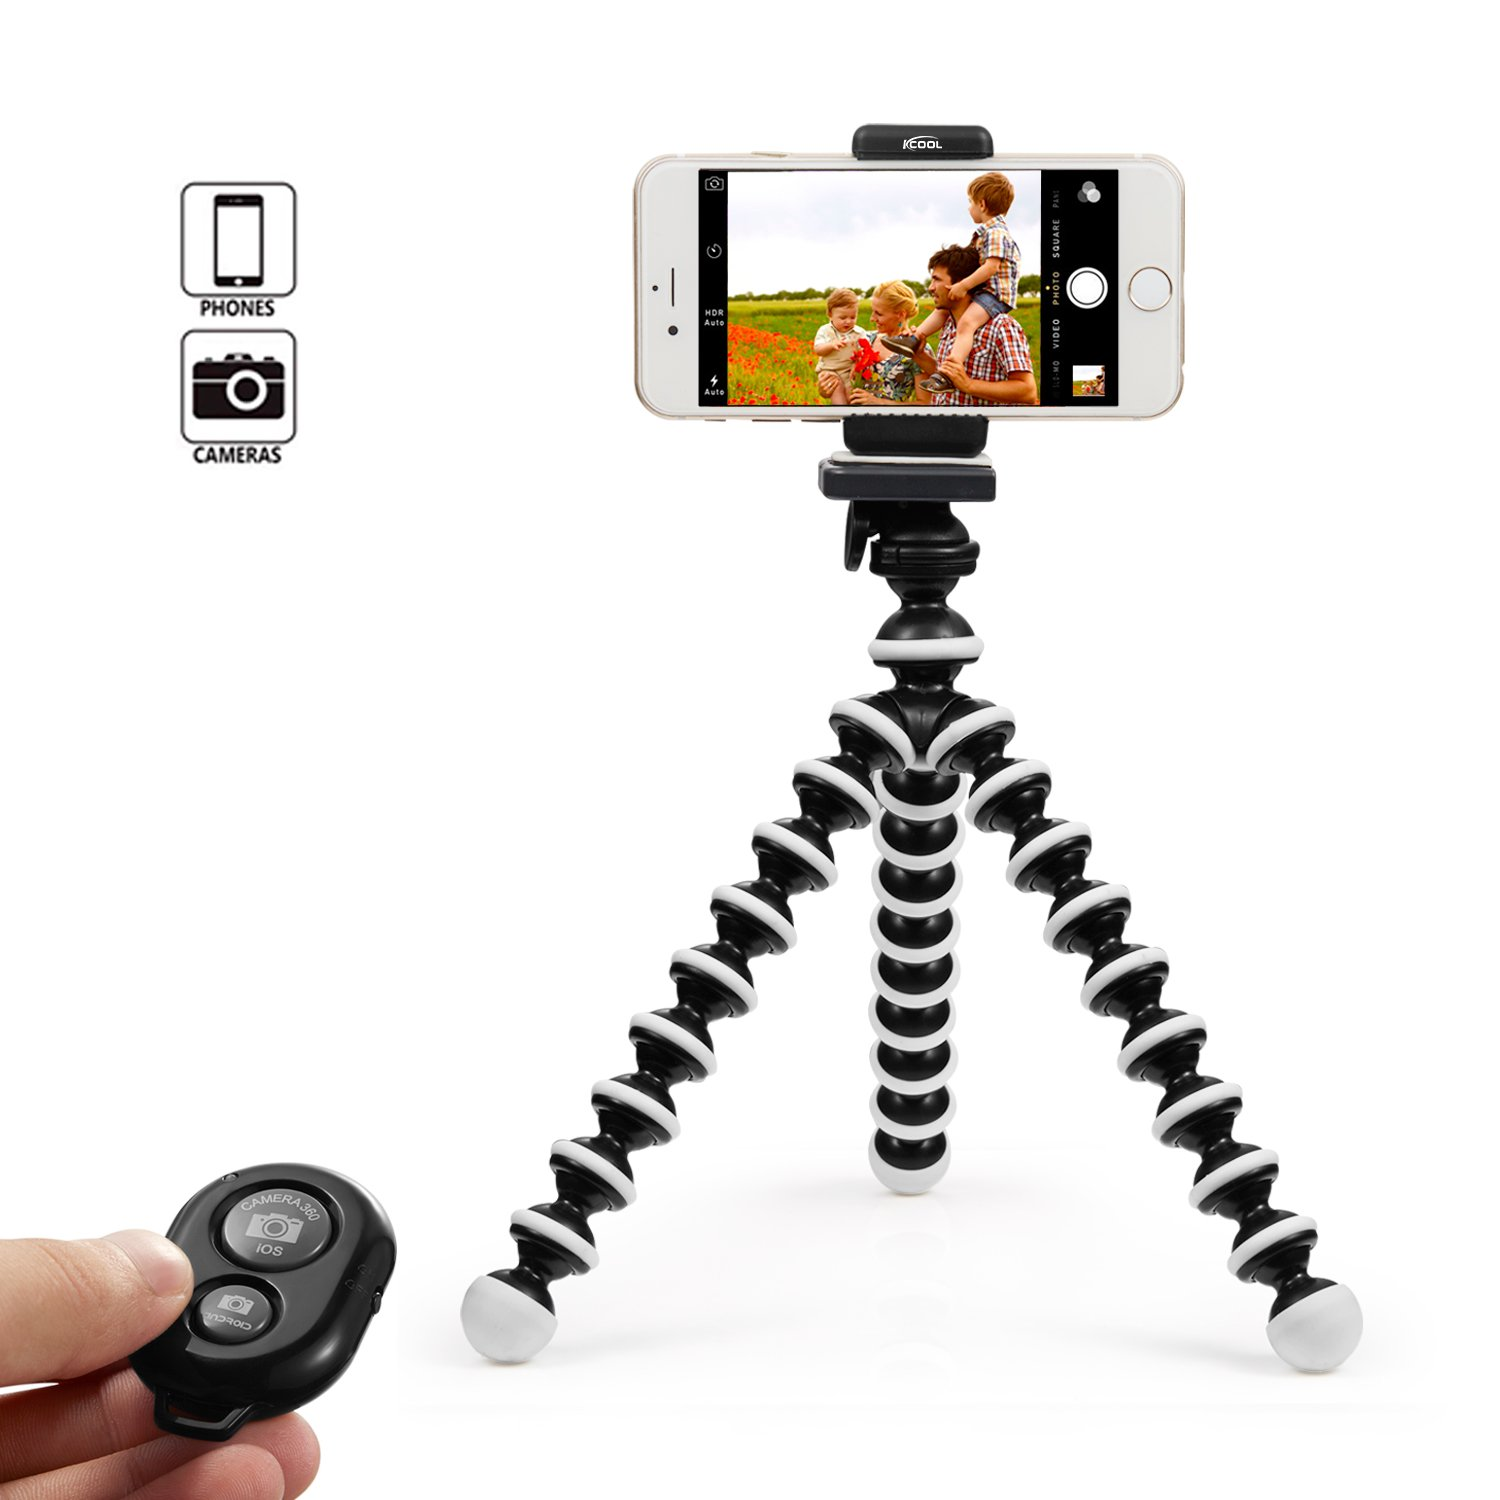 KCOOL Octopus Style Portable and Adjustable Tripod Stand Holder for iPhone, Cellphone,Camera with Universal Clip and Remote (Black White)